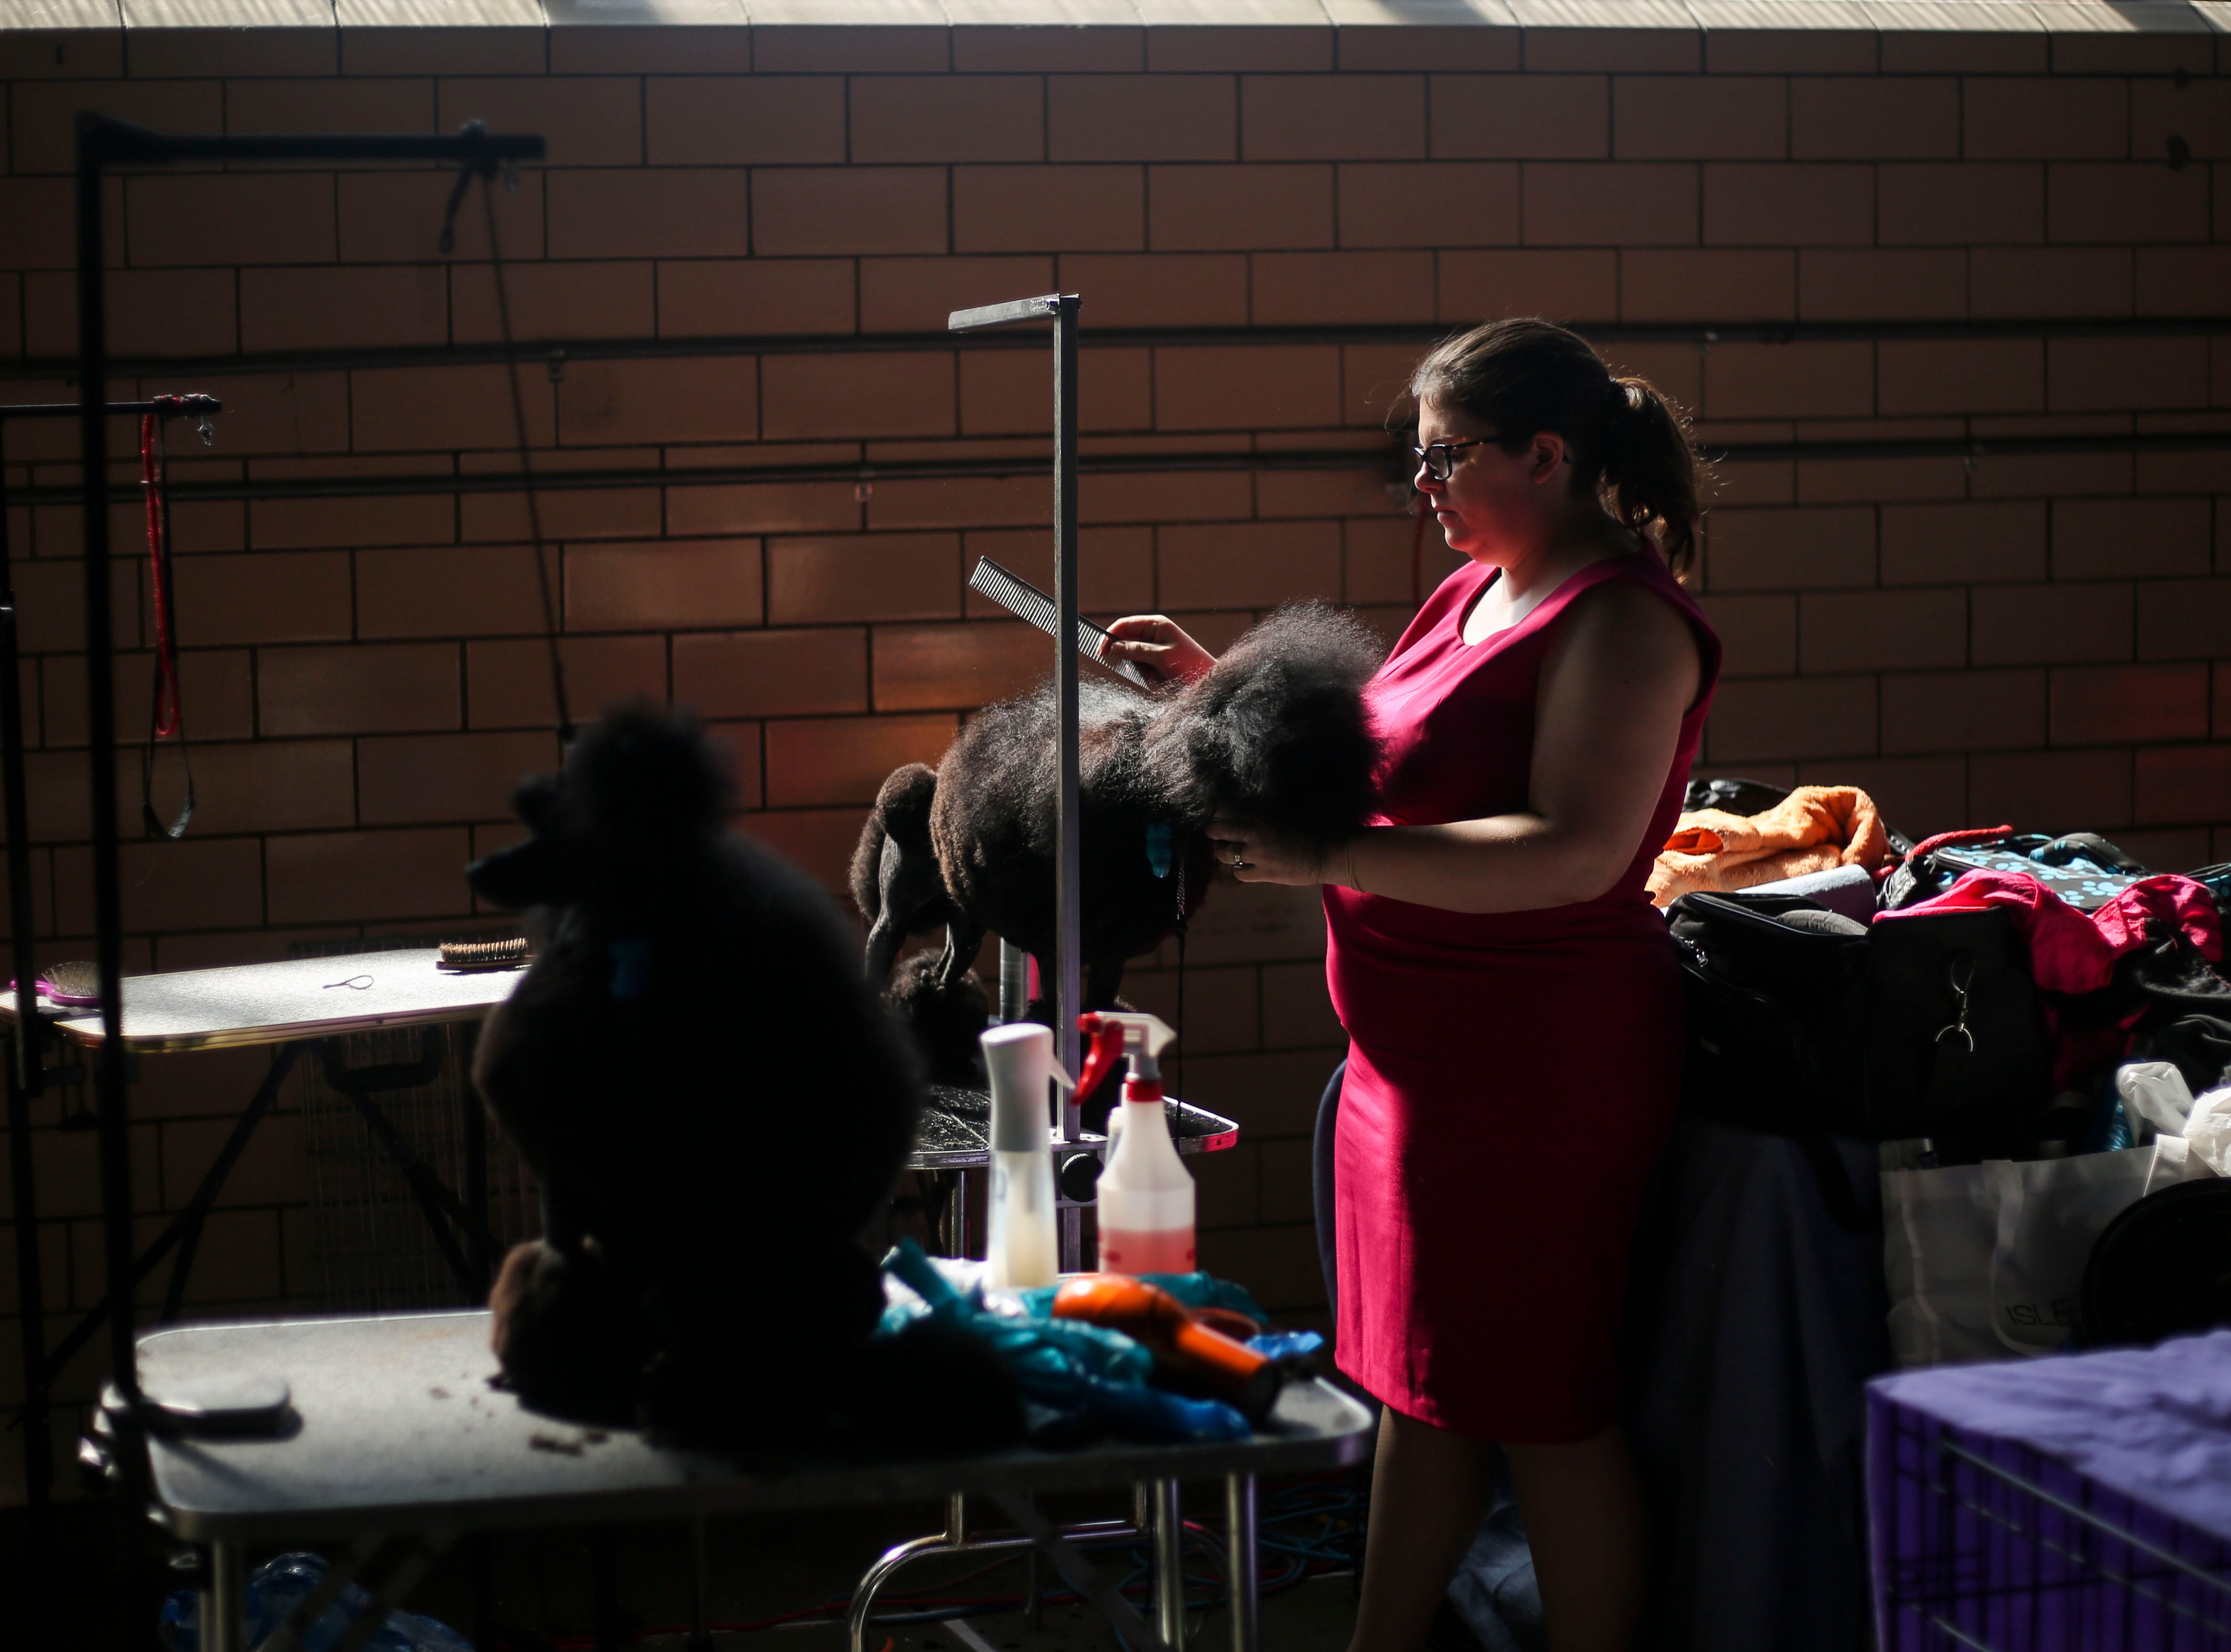 Allison Hardie, from Toronto, Canada, grooms Telsa, a 16 month-old Miniature Poodle, before competition during the Kentuckiana Cluster of Dog Shows at the Kentucky Fair and Exposition Center in Louisville, Ky. on Thursday, March 14, 2019.